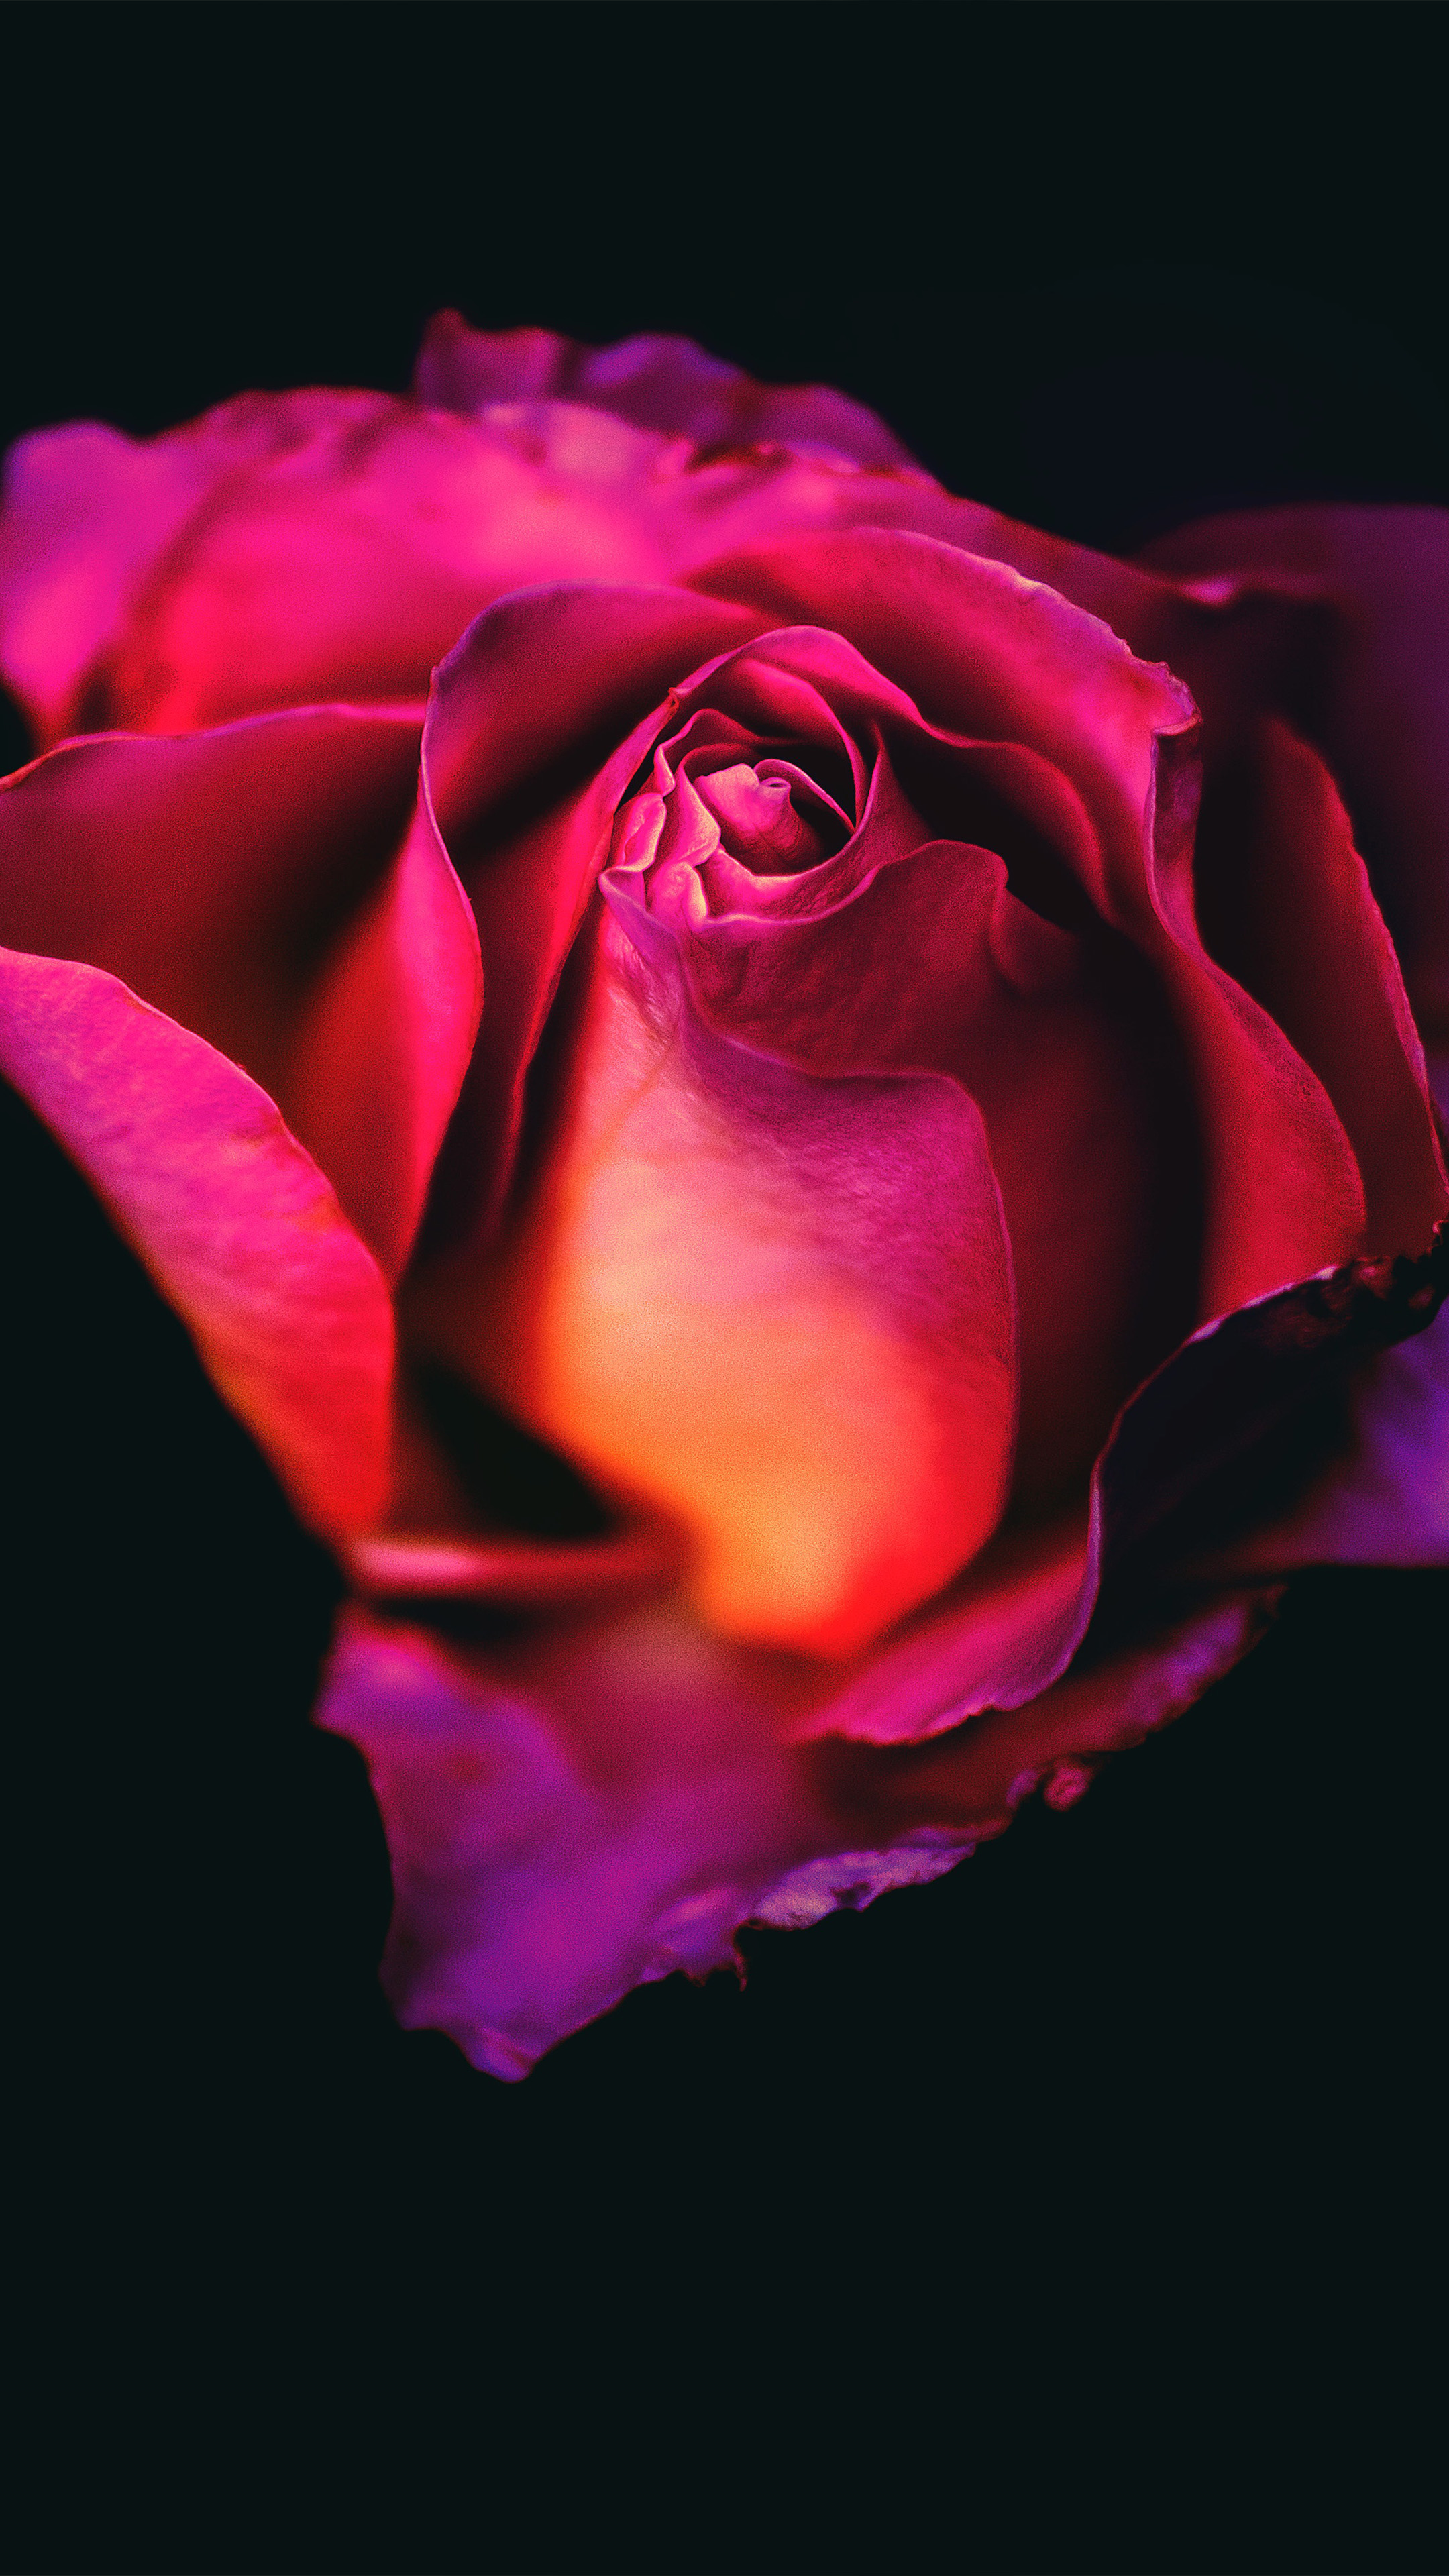 Download rose flower dark background free pure 4k ultra hd - Rose flowers wallpaper for mobile ...